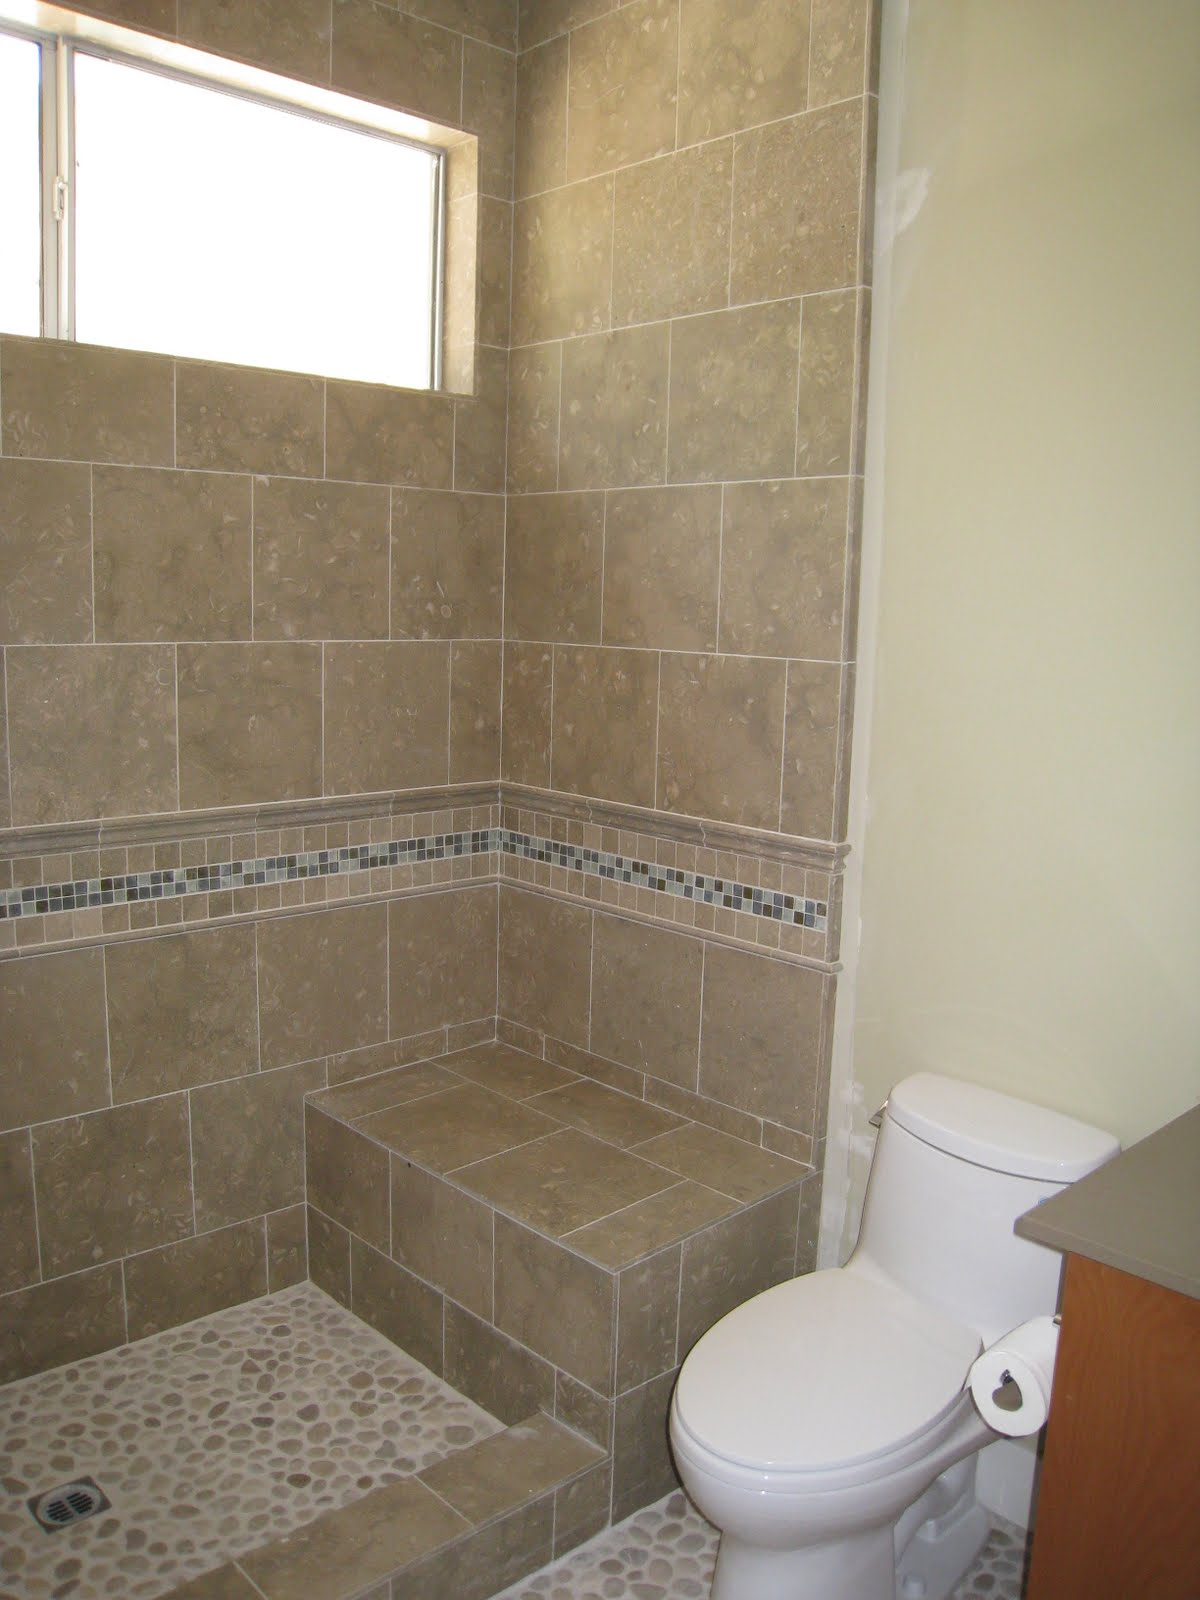 Remodel insanity Tile shower stalls